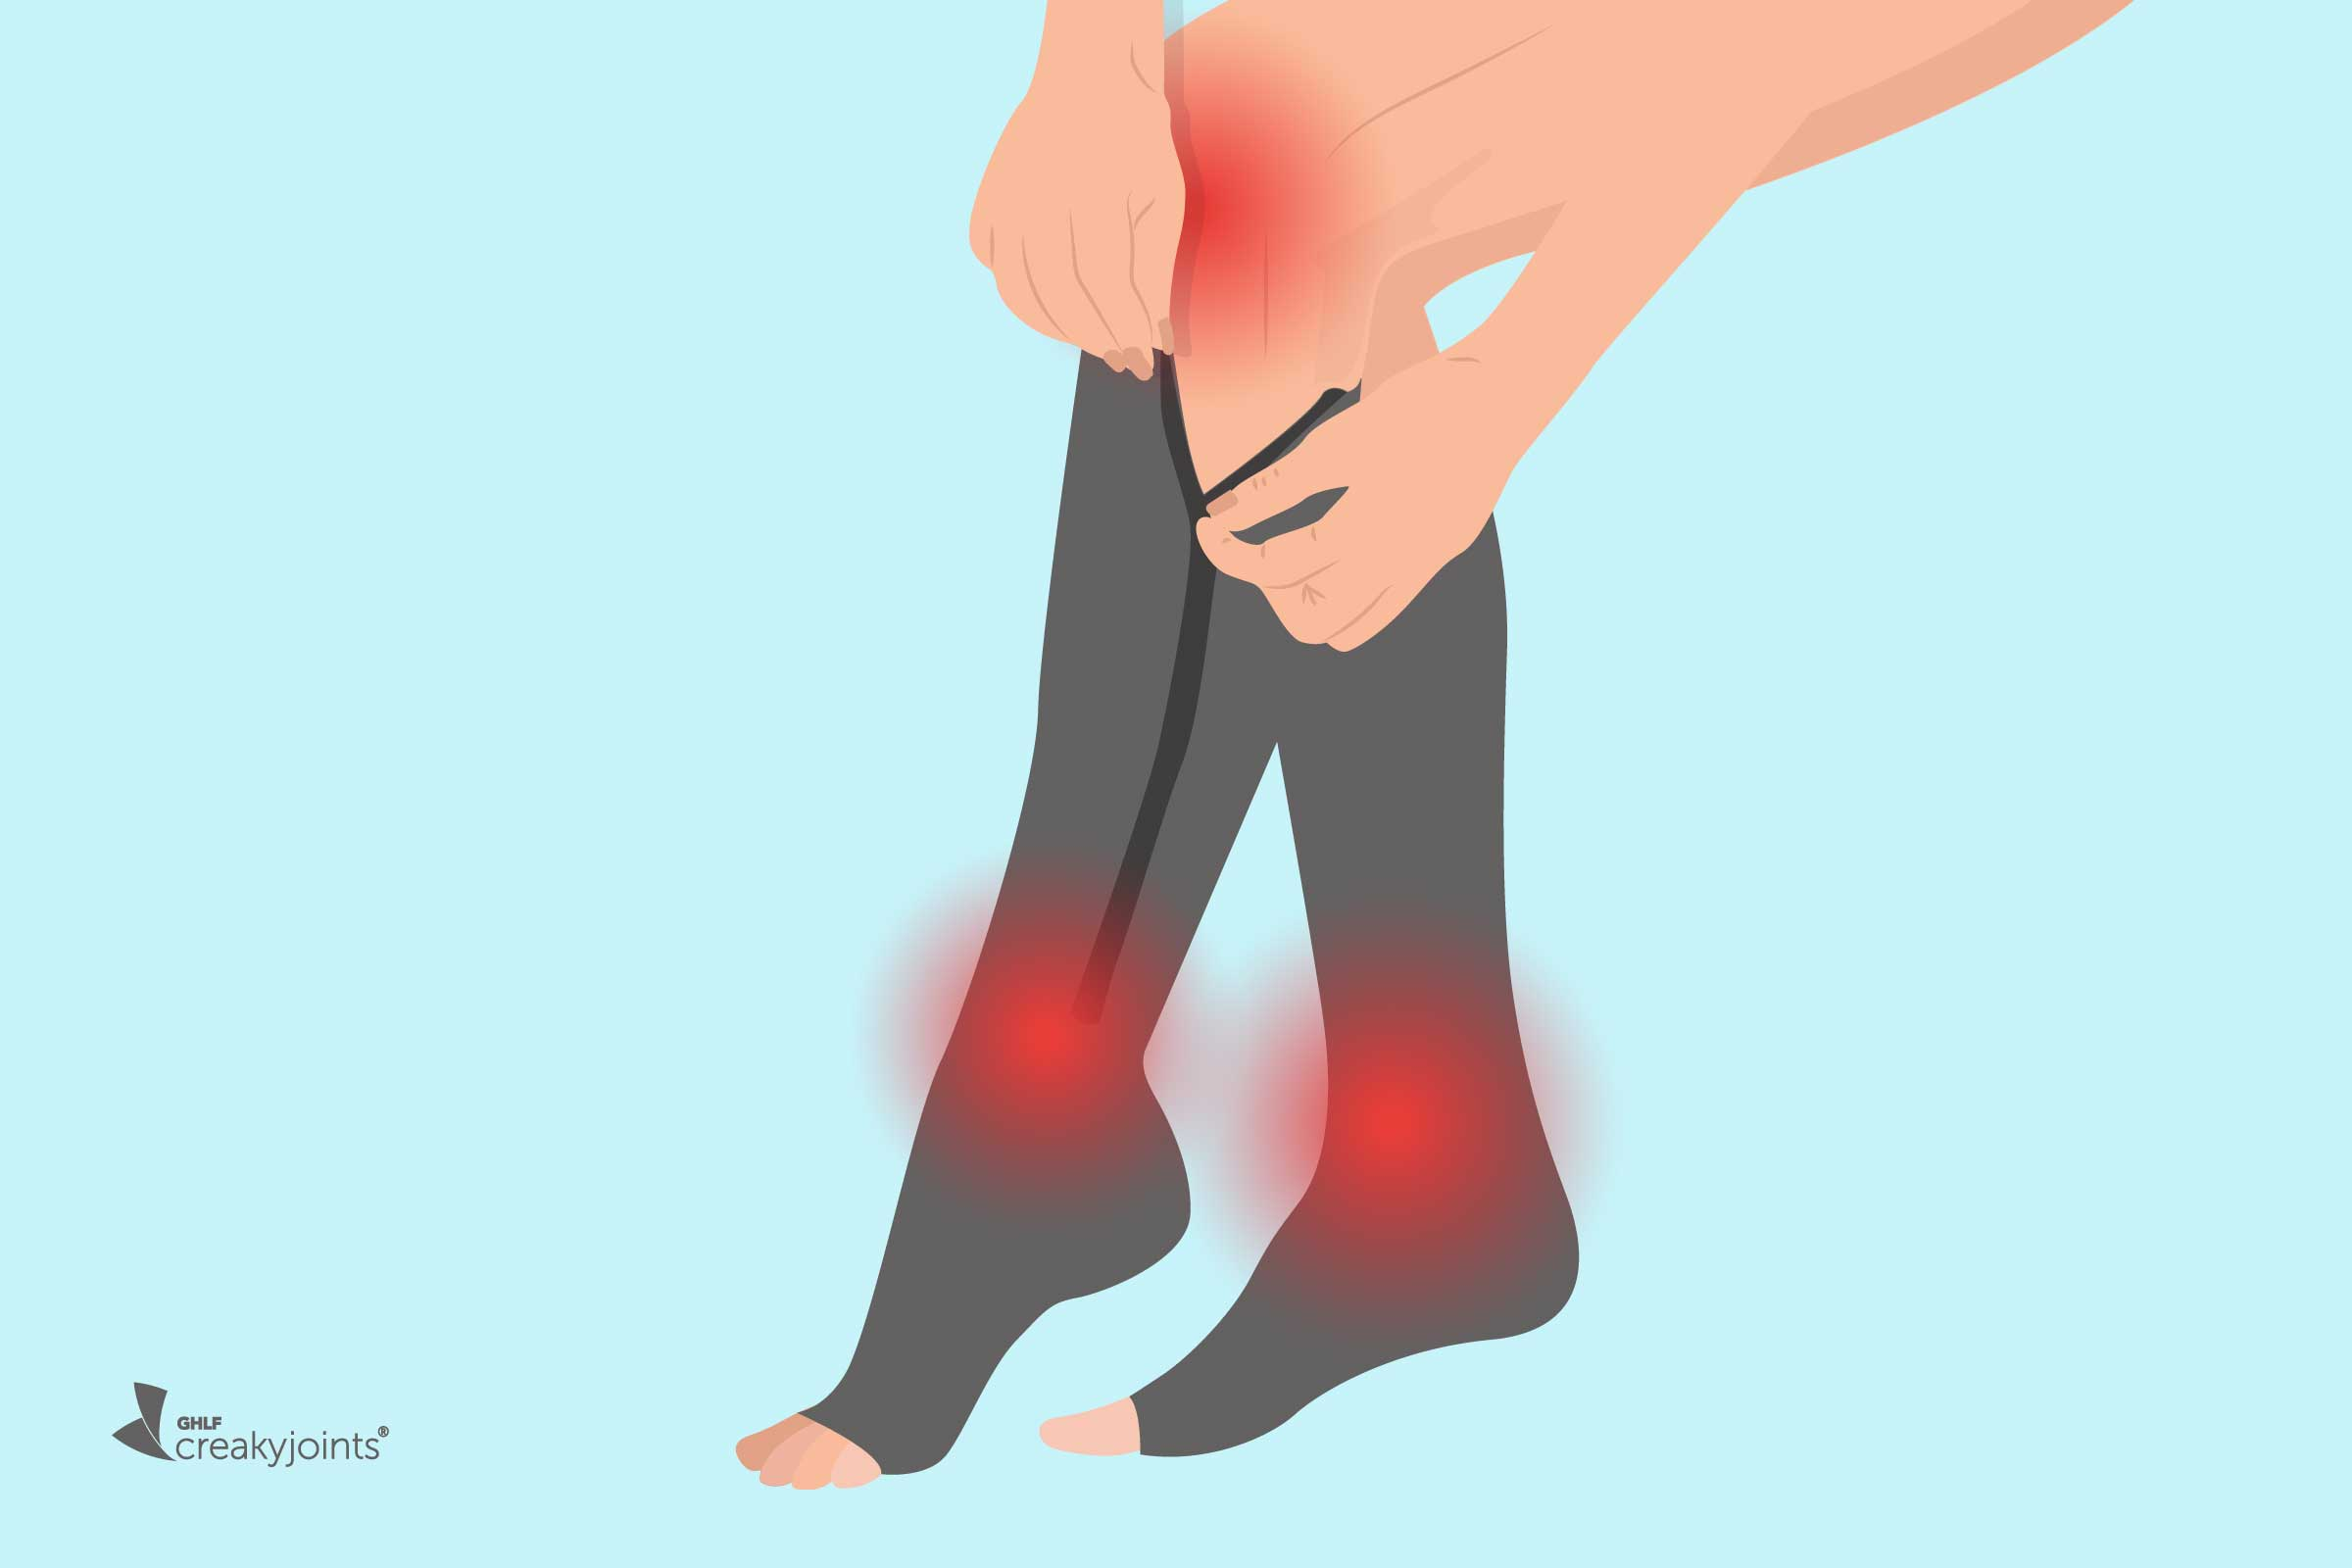 Compression Socks for Arthritis: How They Work, Brands to Try, More